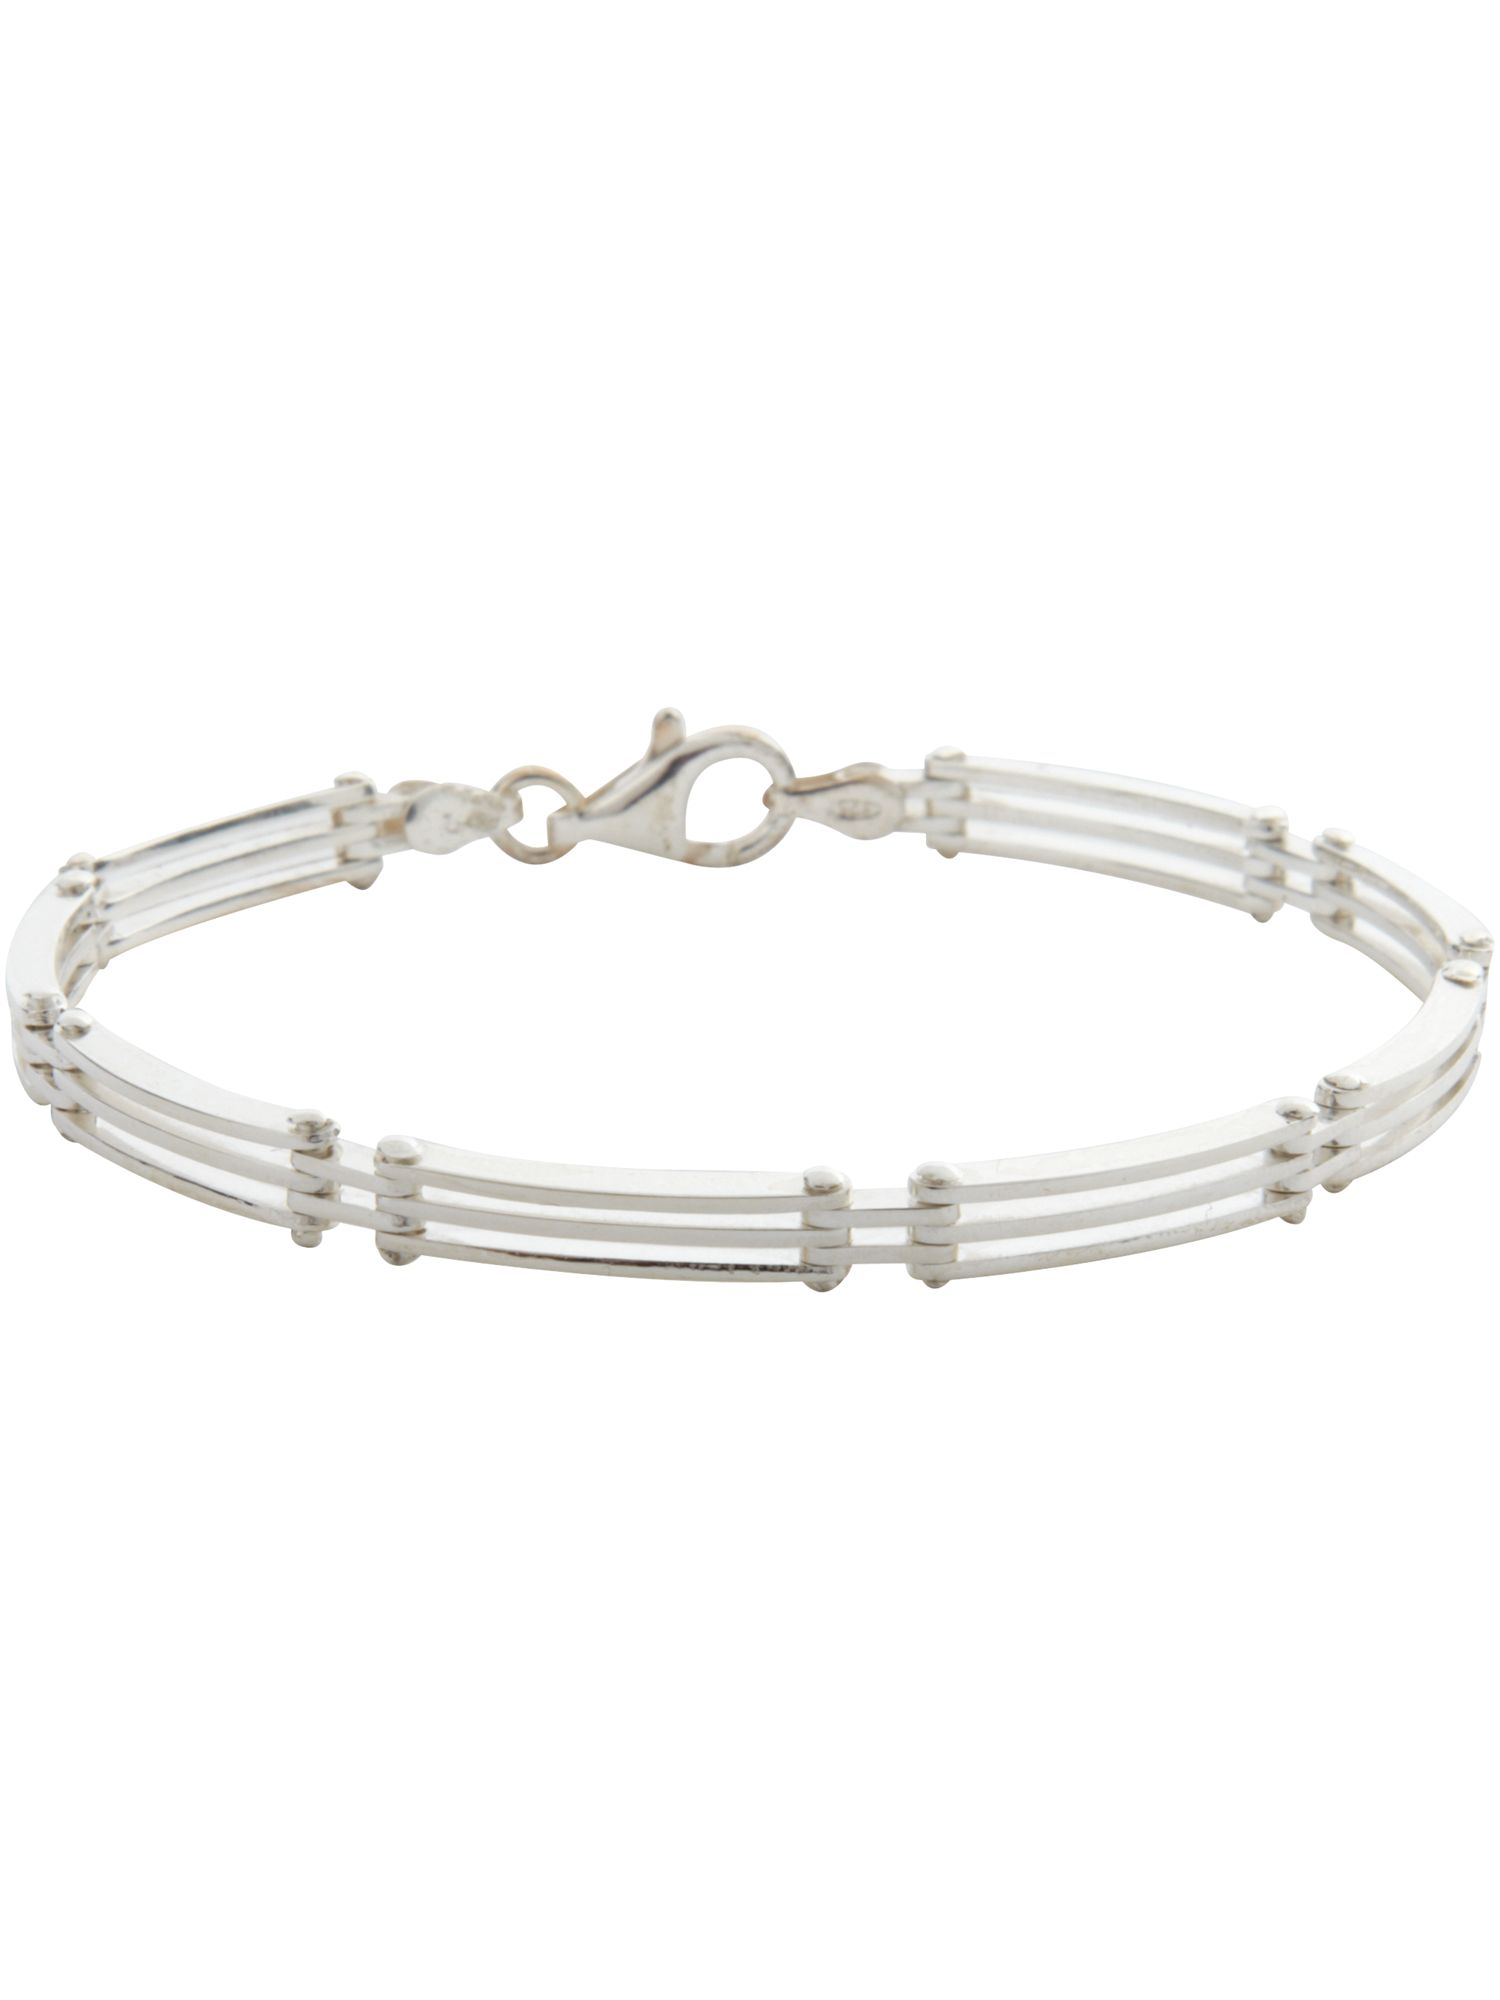 Three bar flex sterling silver bracelet